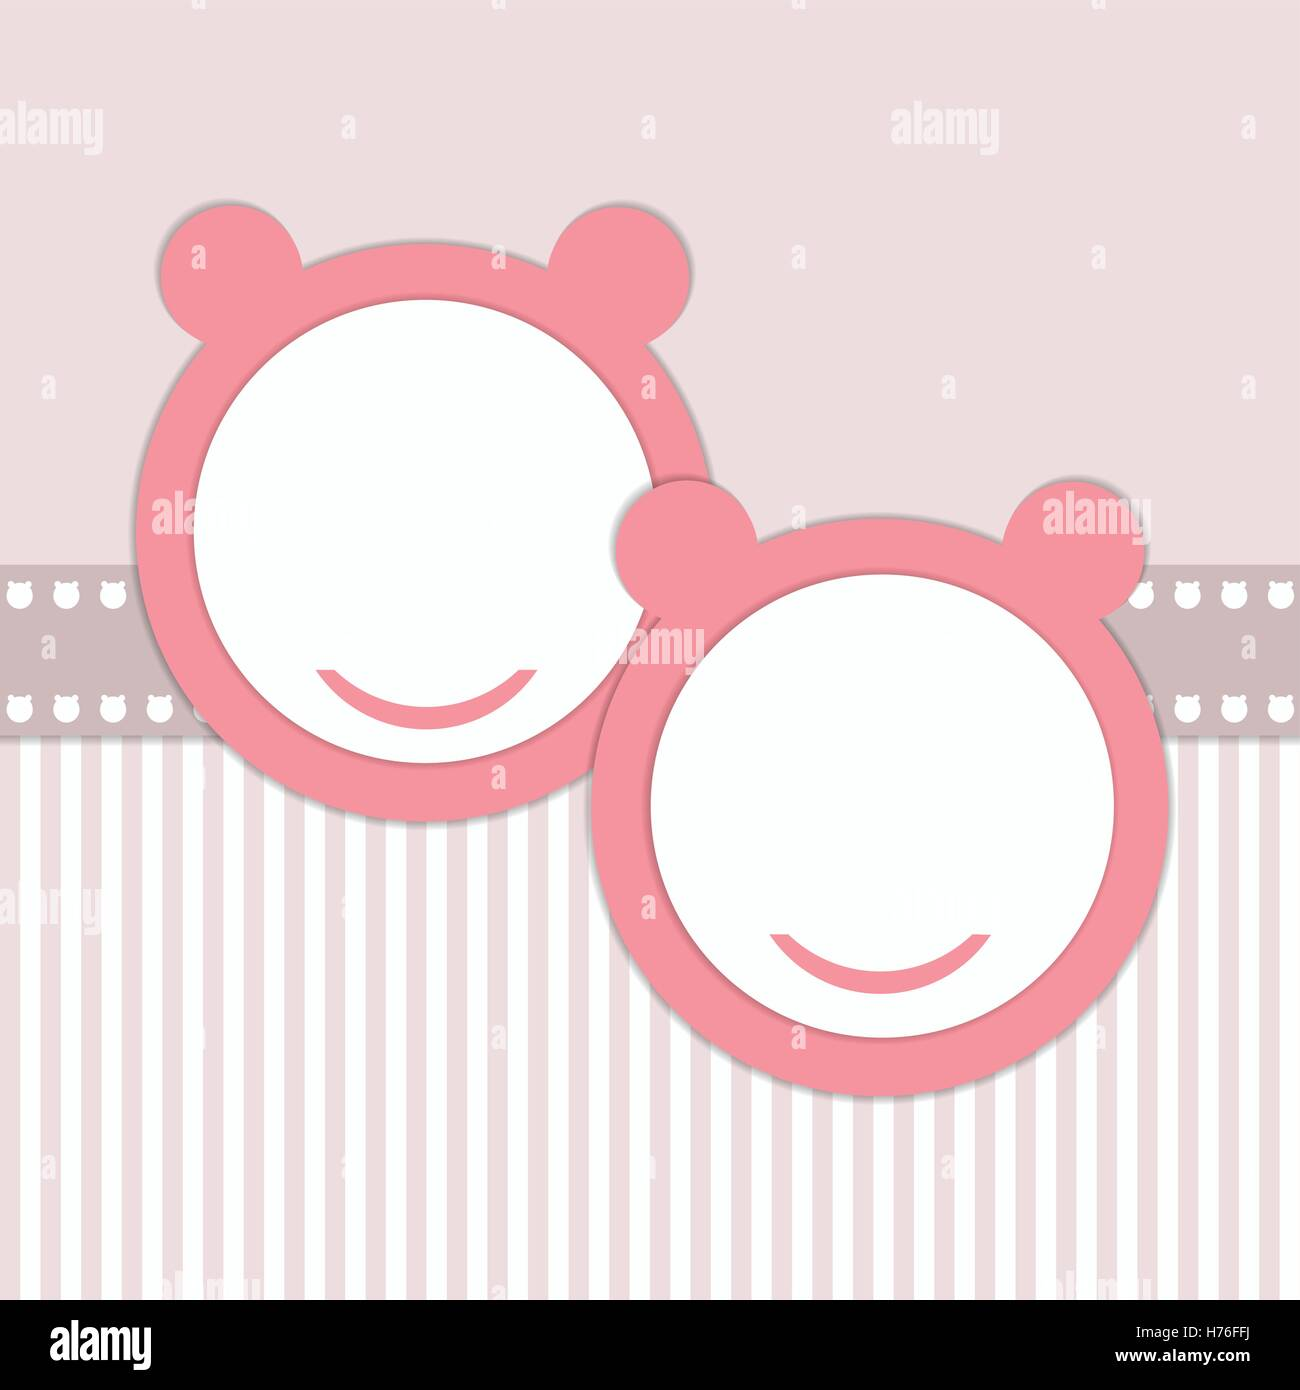 Baby Shower Invitation Card - Twins Girls - Stock Vector